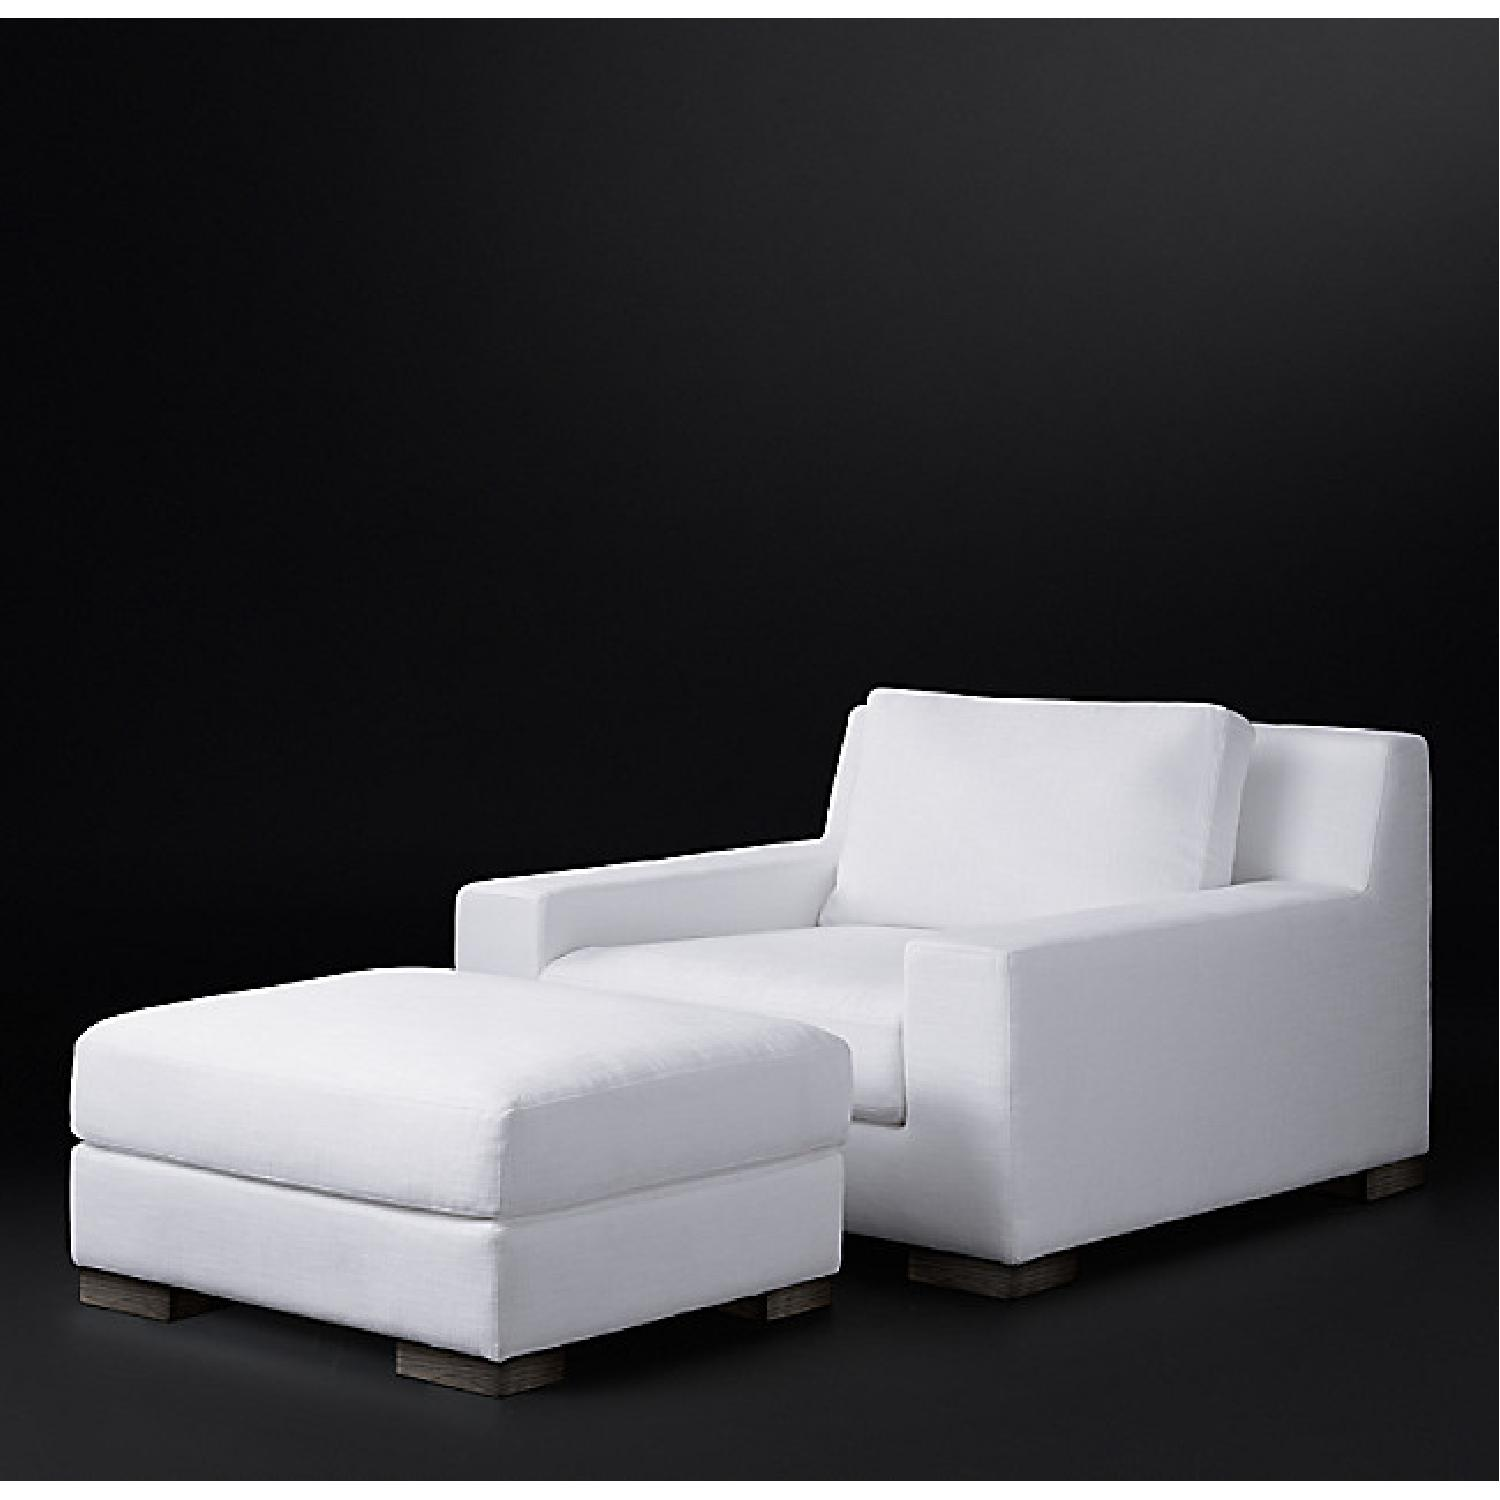 Restoration Hardware Modena Chairs with Ottomans Set - image-0